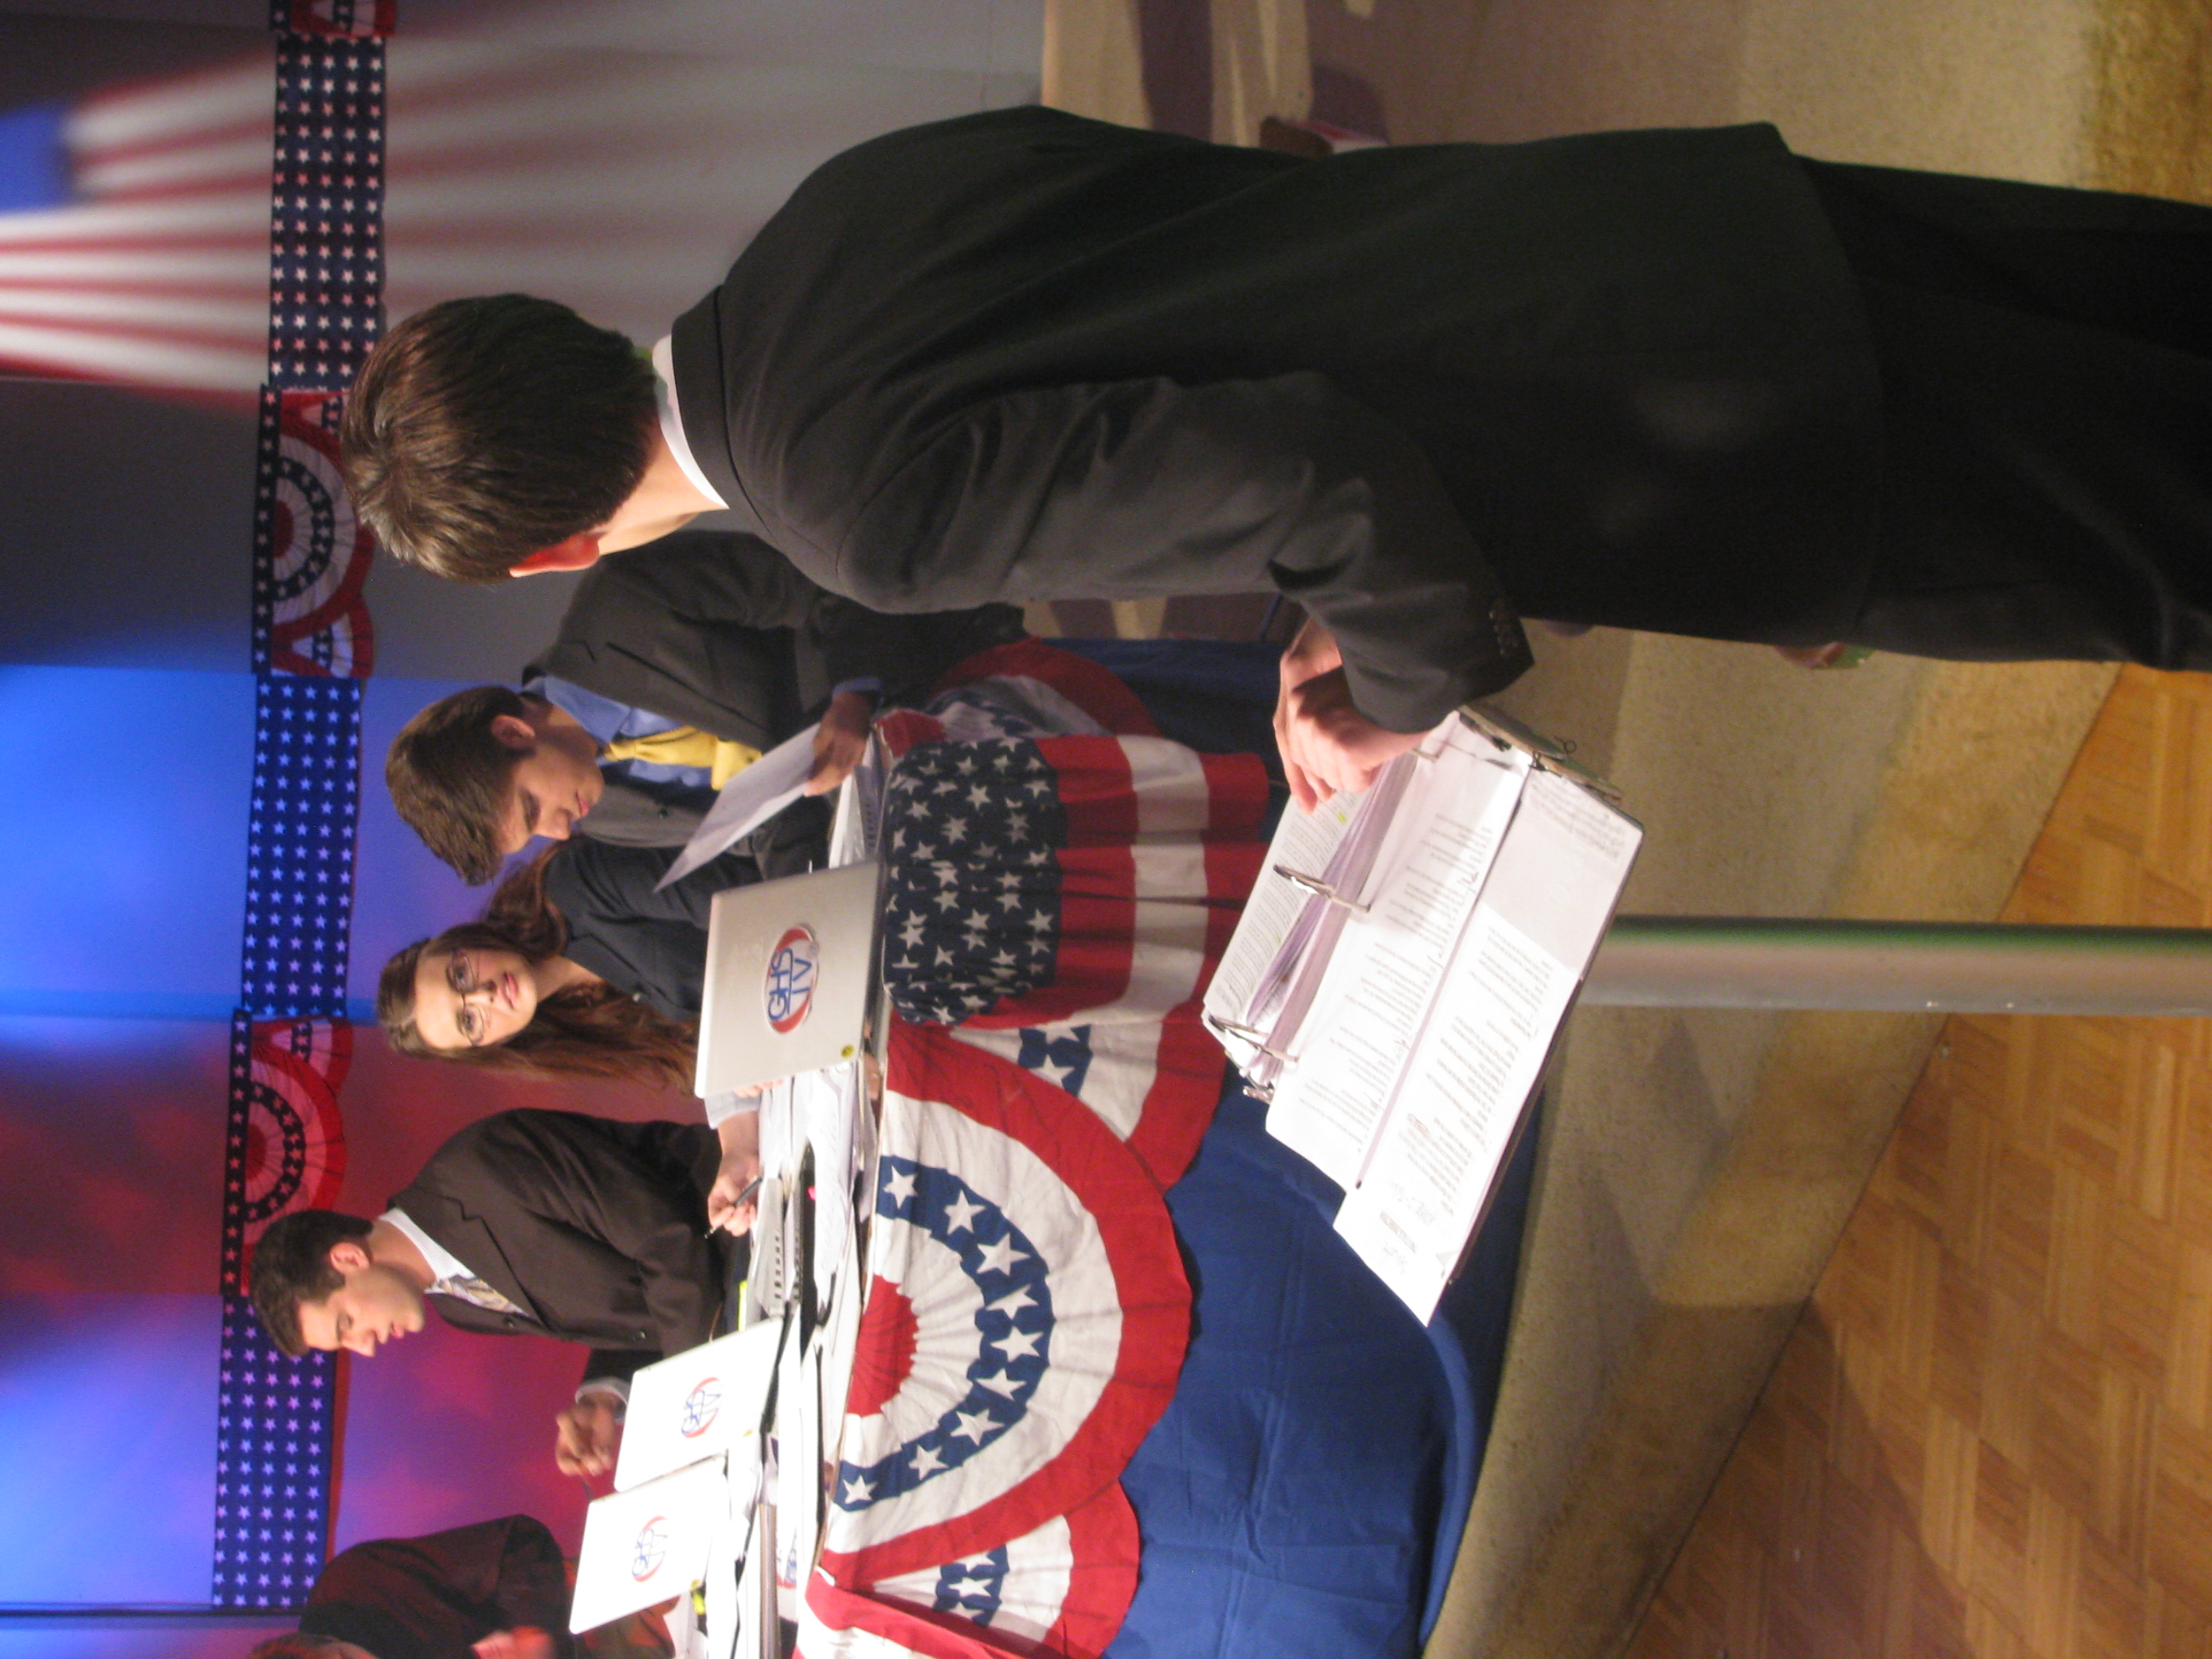 Election Night 2010  moderator Andrew Baldock goes over specifics for an upcoming on-air discussion with US House anchor Marinela Zubovic.